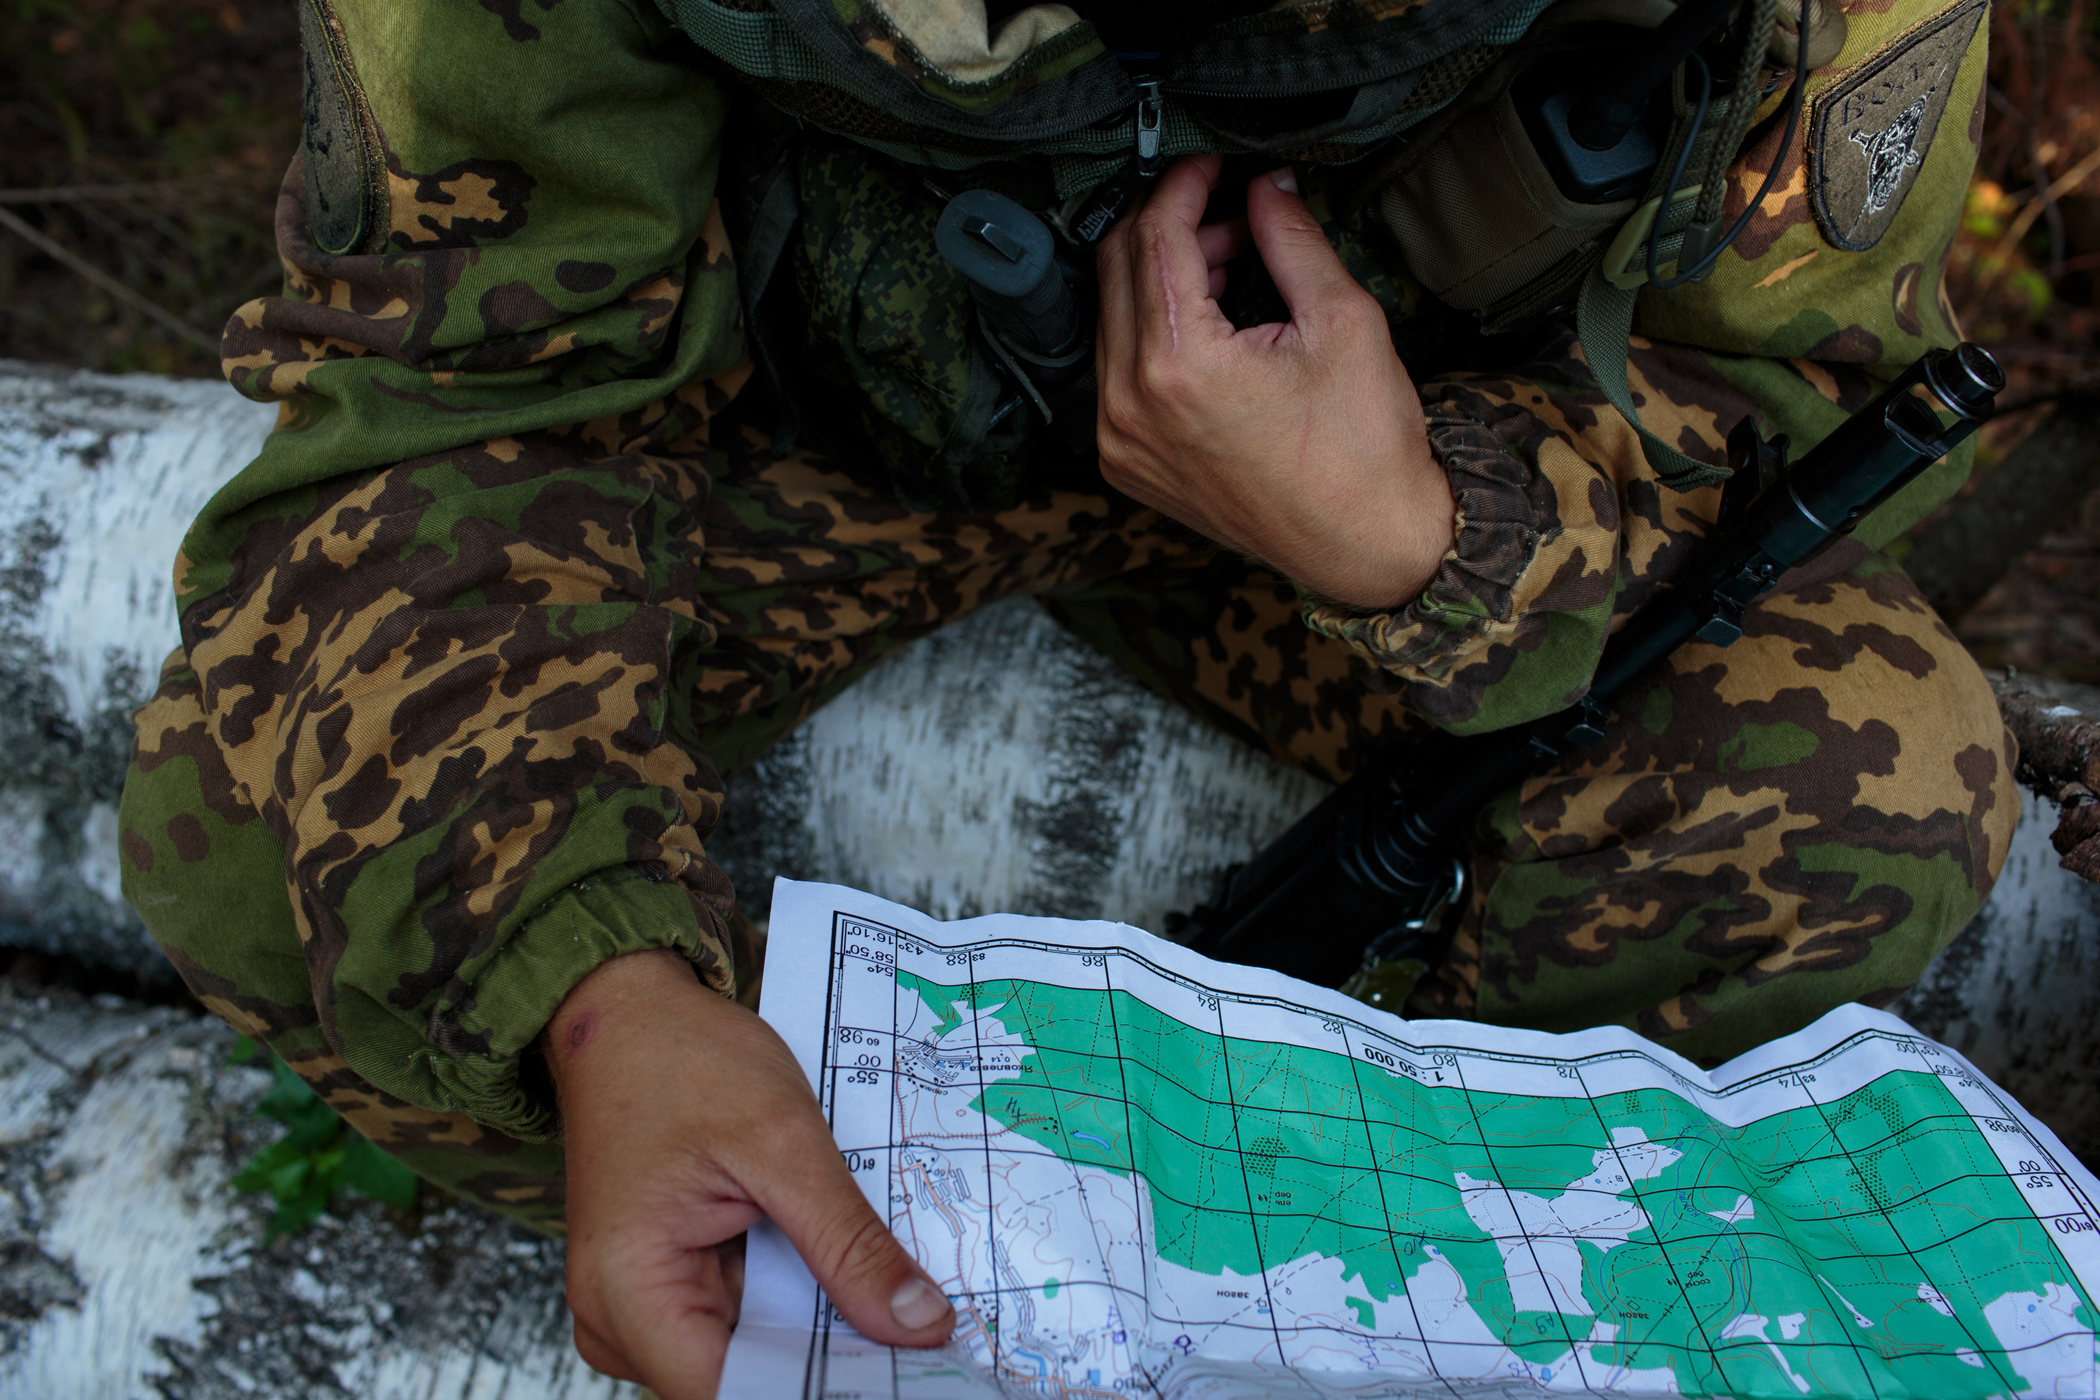 Evgeni (Jenya) Riabyxin, 22, from Stavropol studies a map during a twelve-hour drill in the forests surrounding Diveevo, Russia.